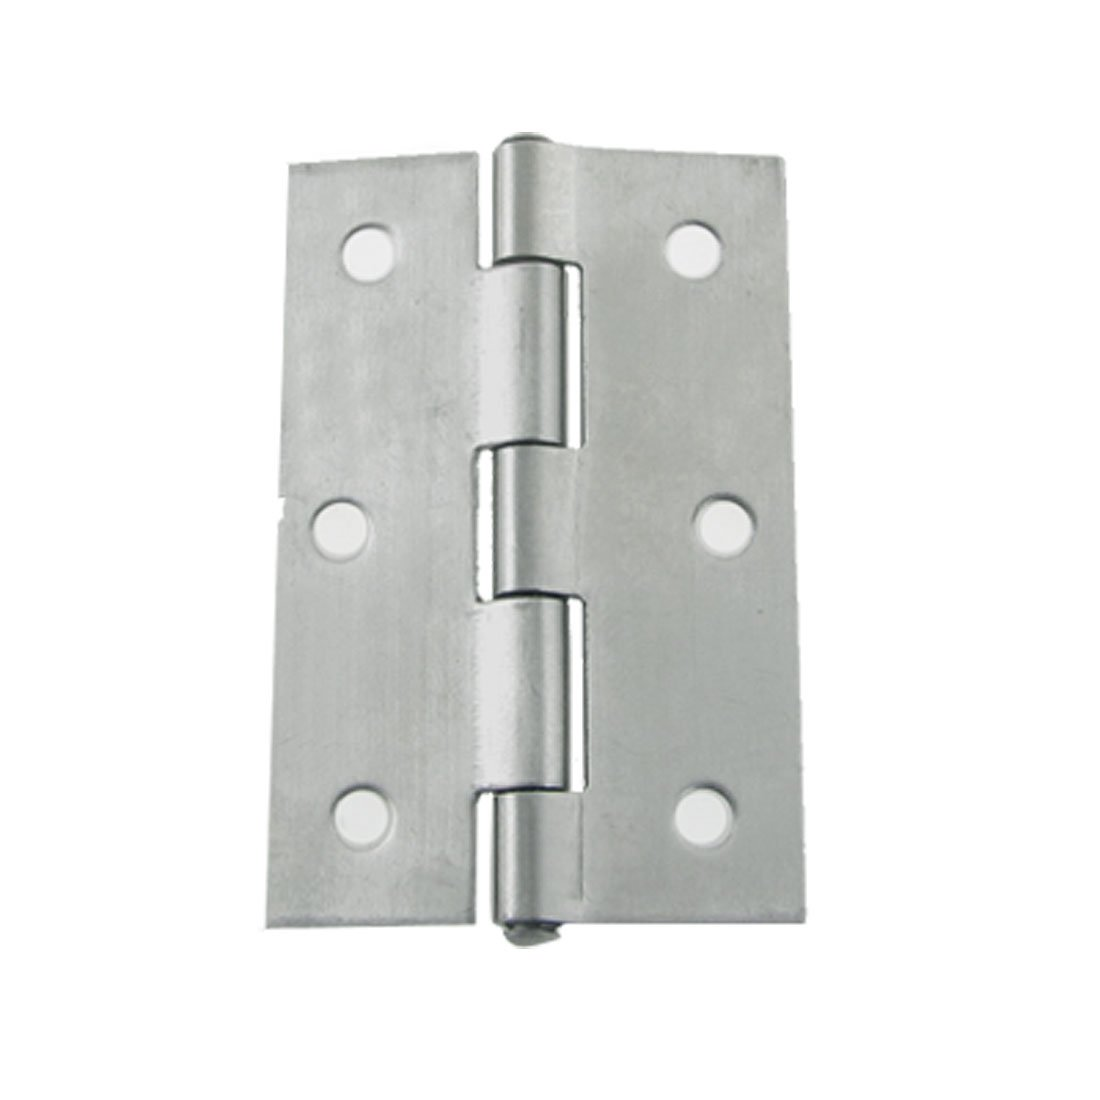 uxcell® 2 Pcs Metal Single Action Door Hinges 2.5' Length a11120200ux0482